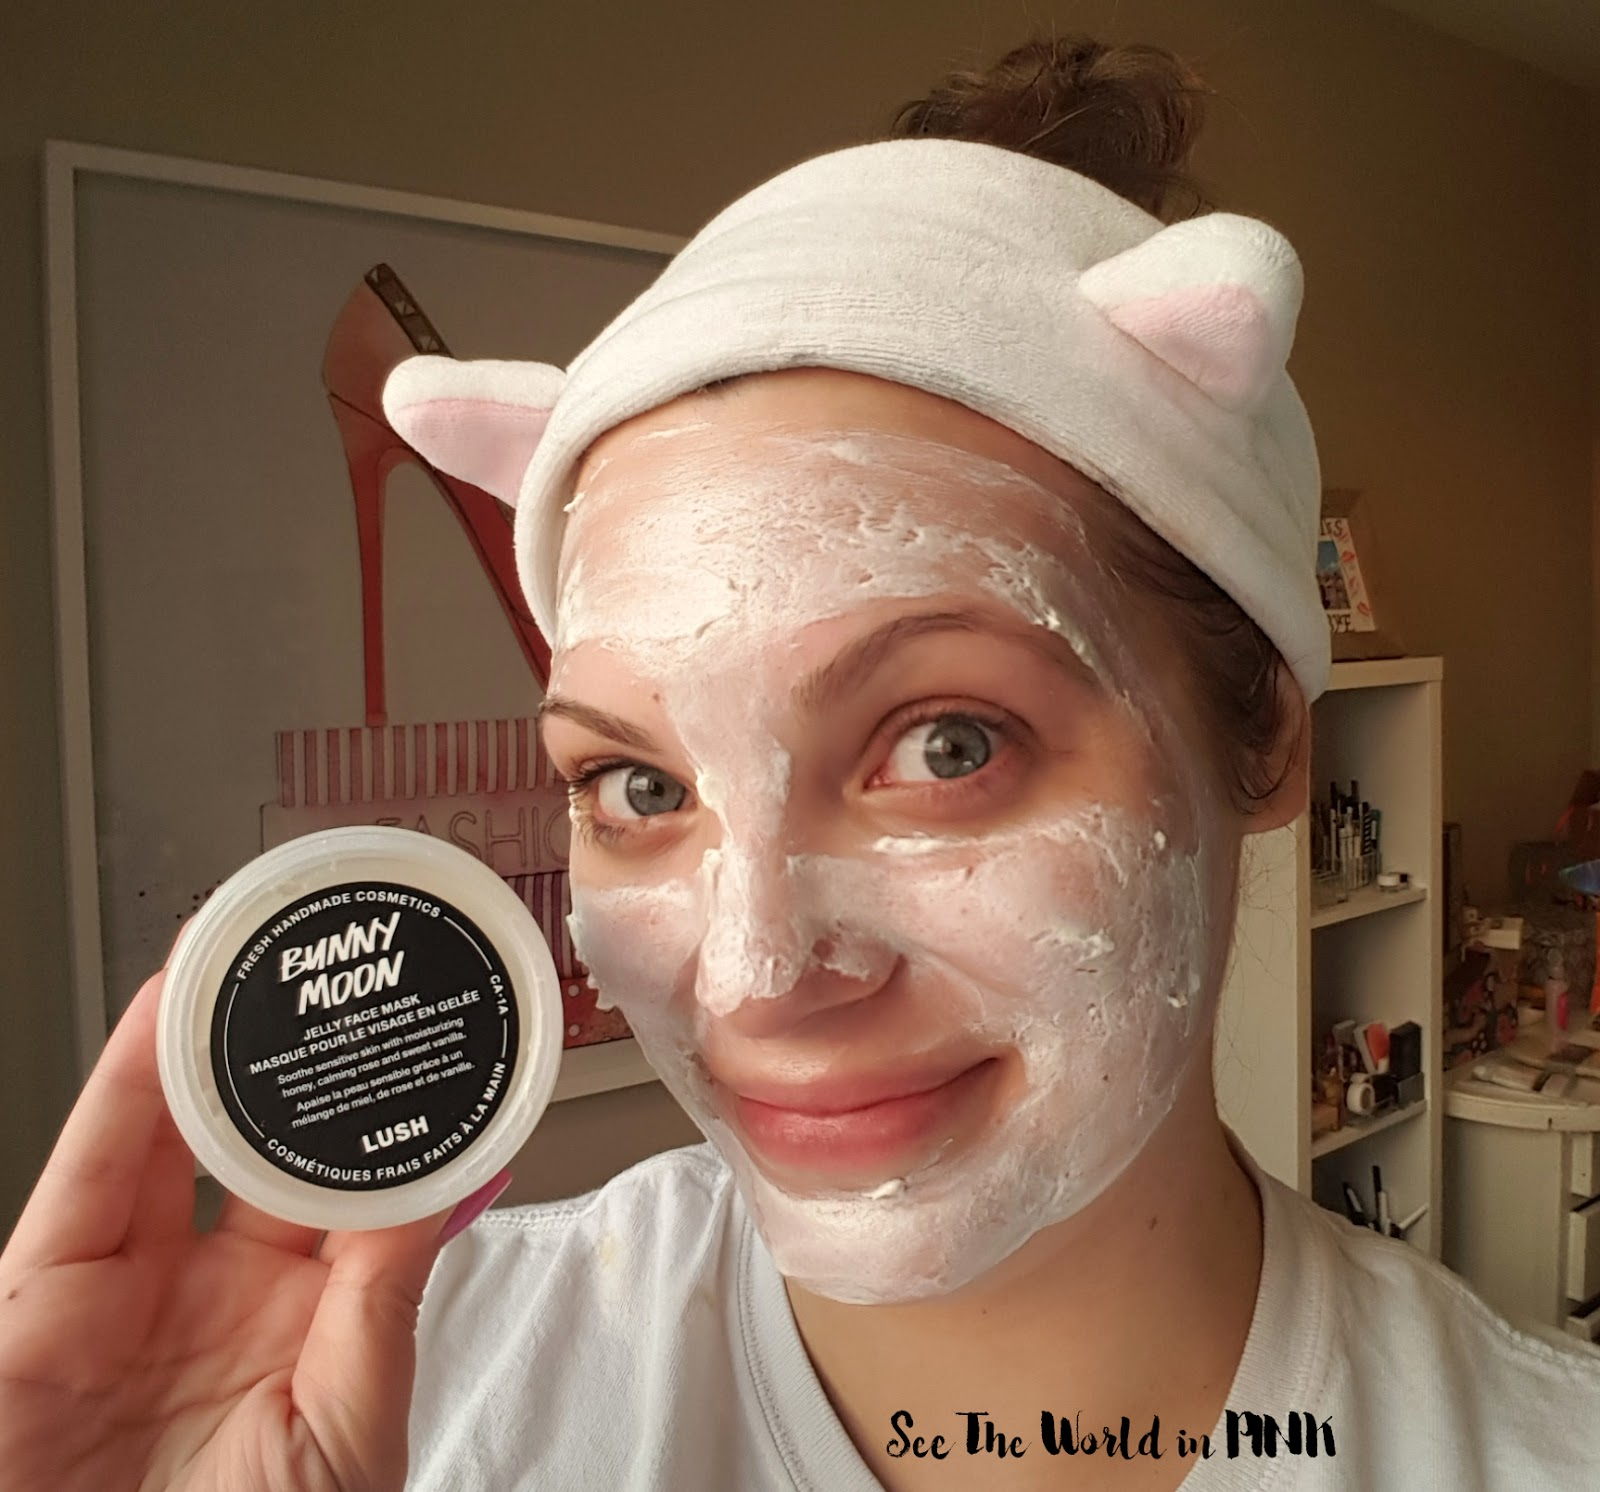 """Skincare Sunday - NEW Lush Jelly Face Mask """"Bunny Moon"""" Try-on and Review!"""